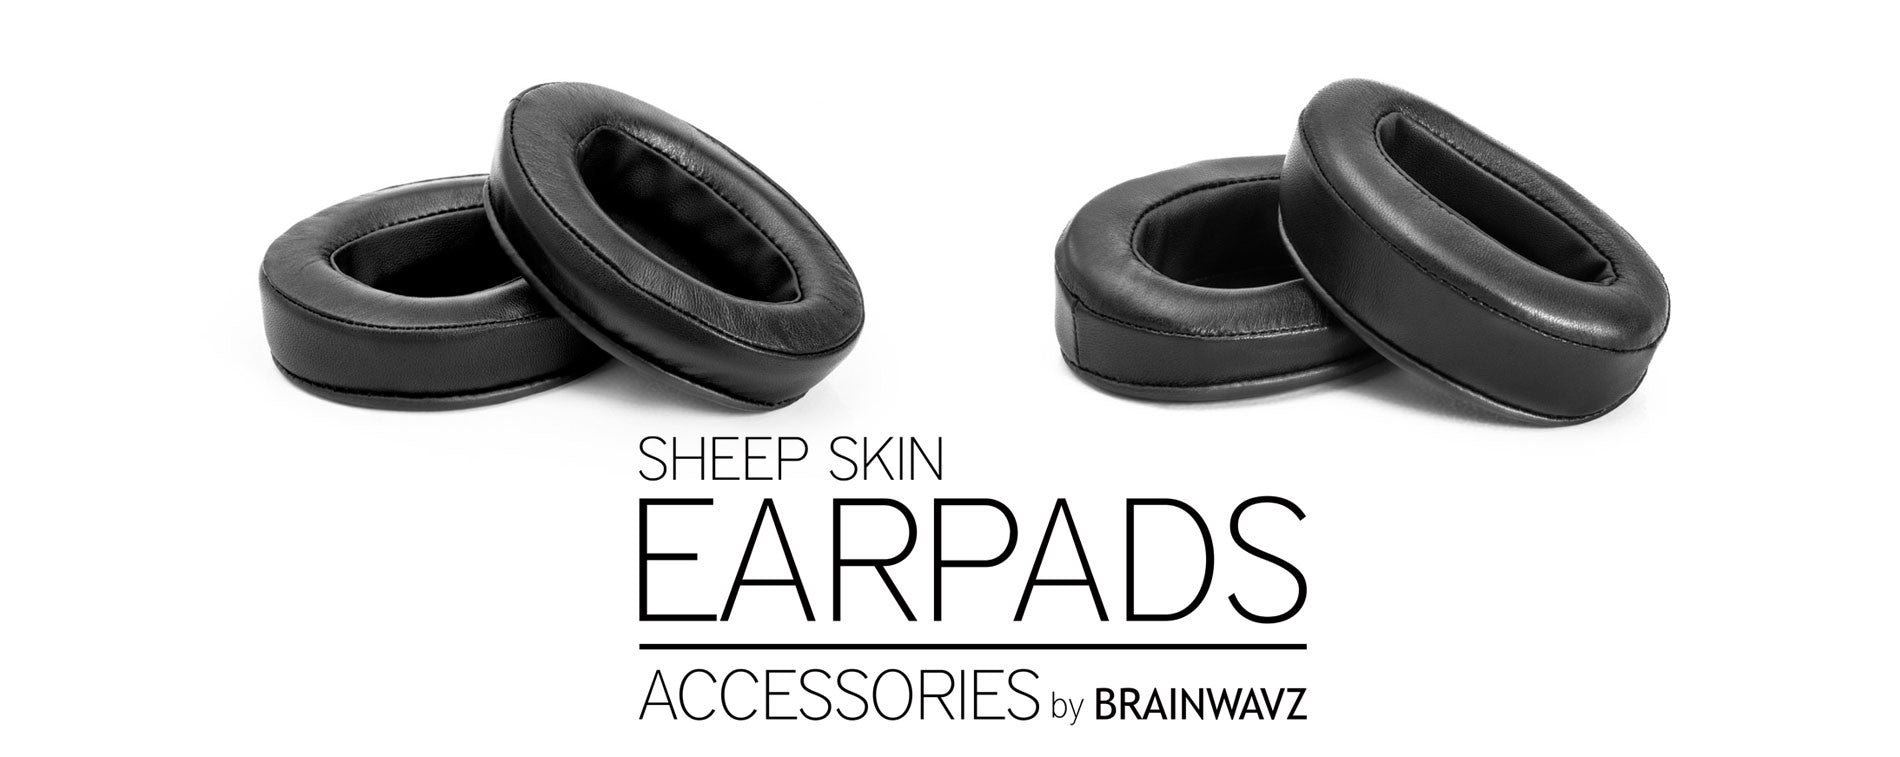 Brainwavz Earpads For Headphones: Now In Sheep Skin Leather!